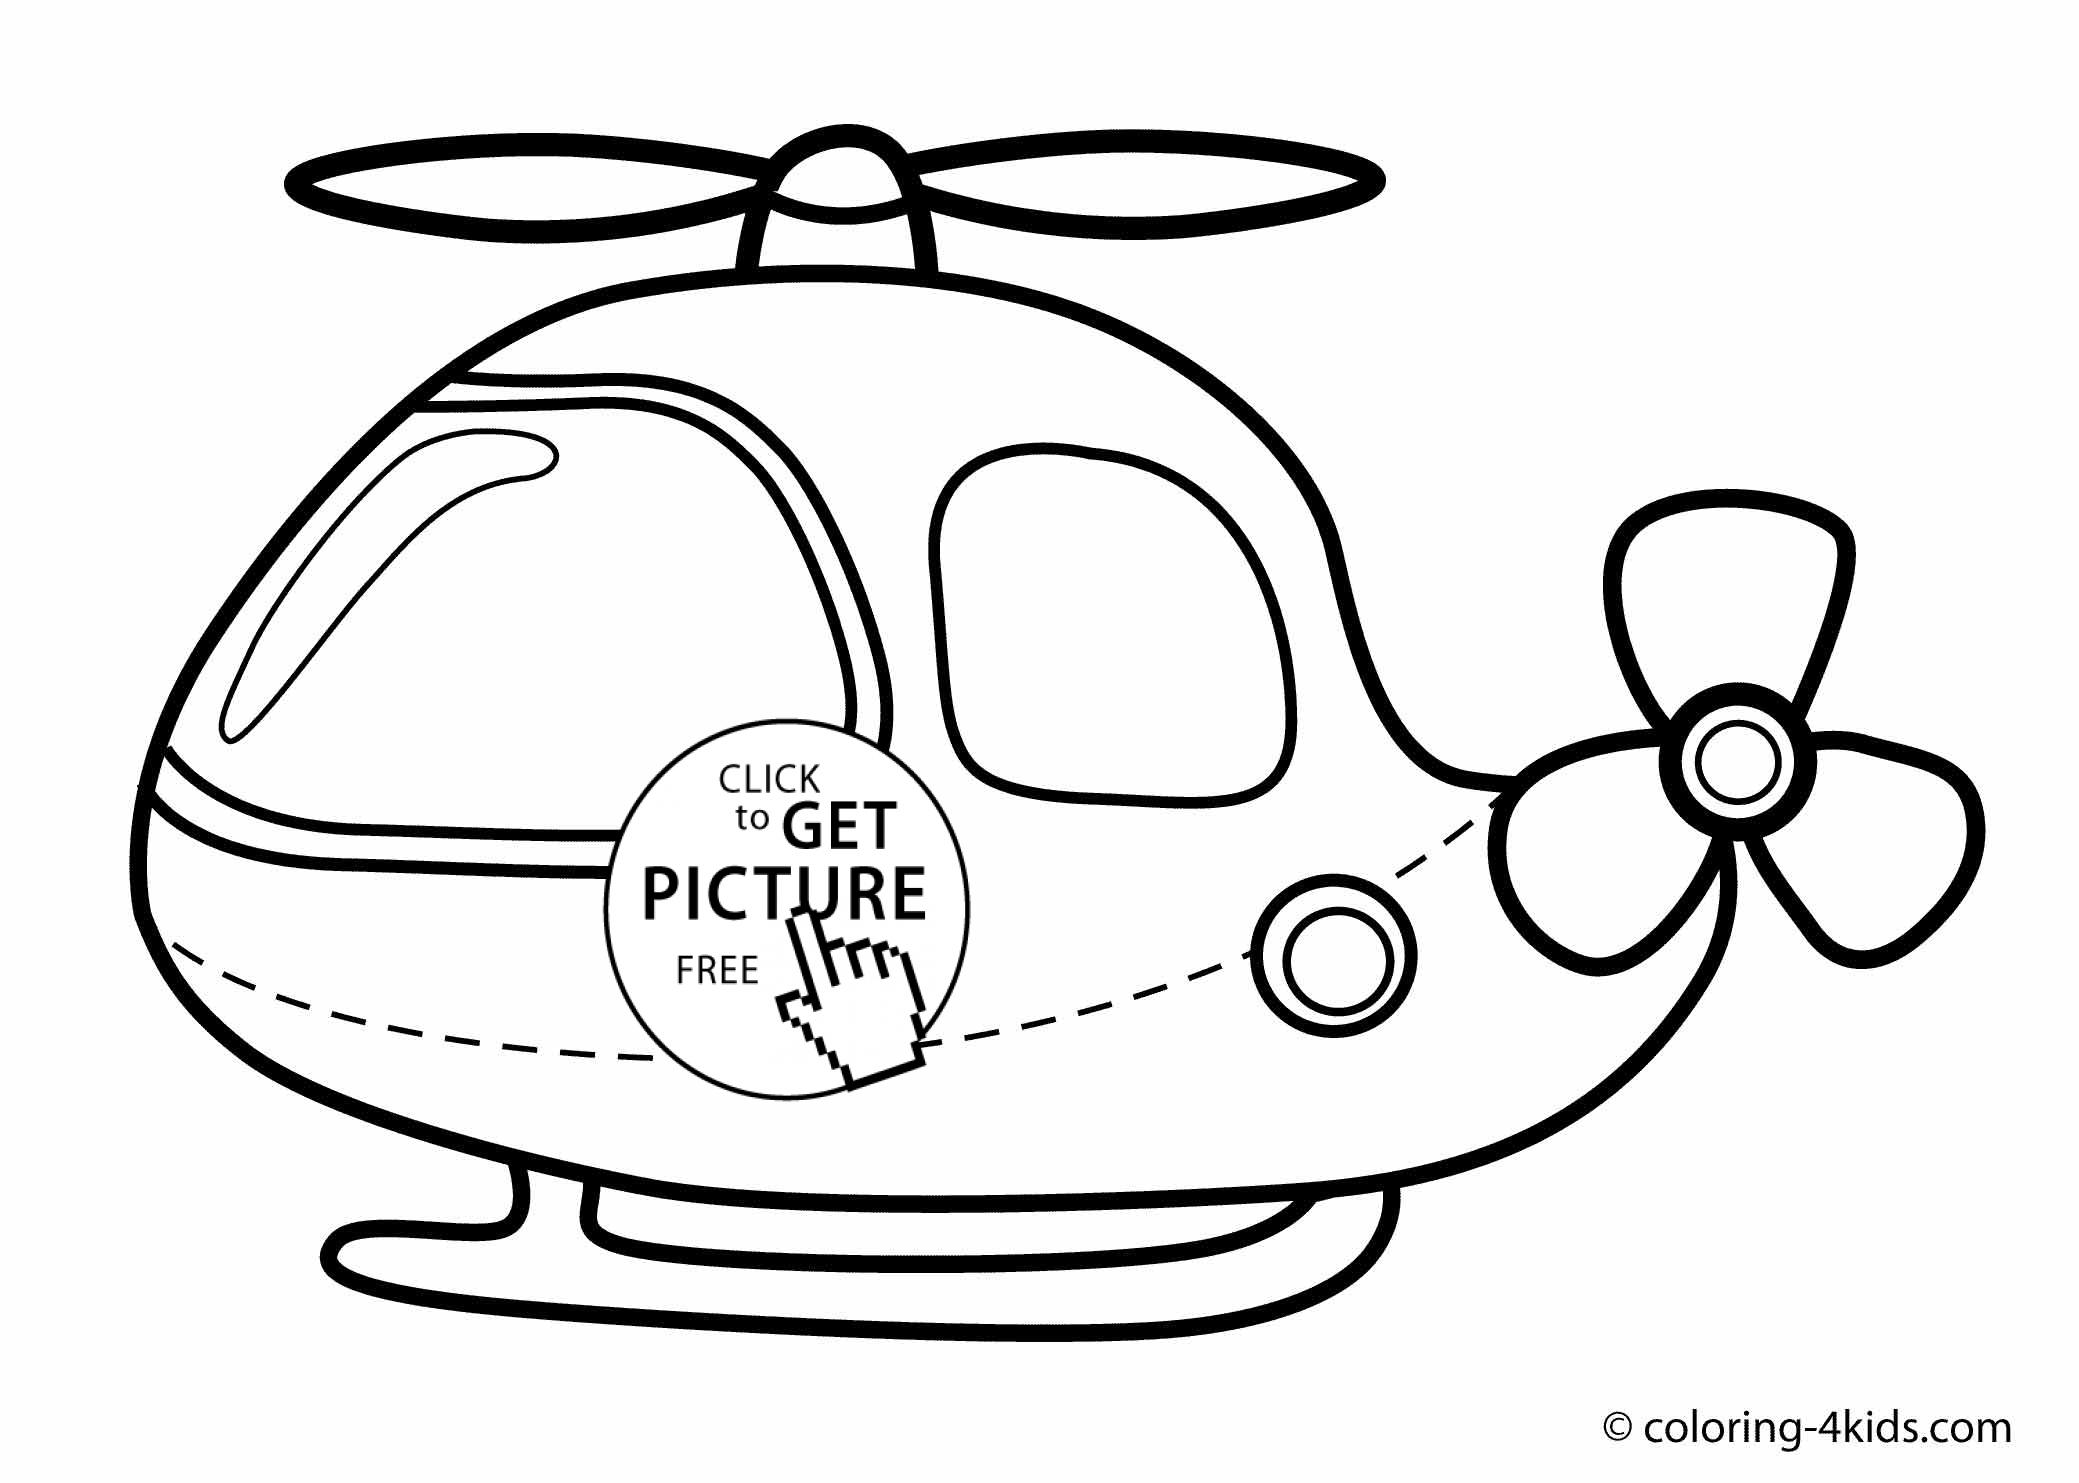 2079x1483 Helicopter Coloring Pages, Helicopter Coloring Book For Kids